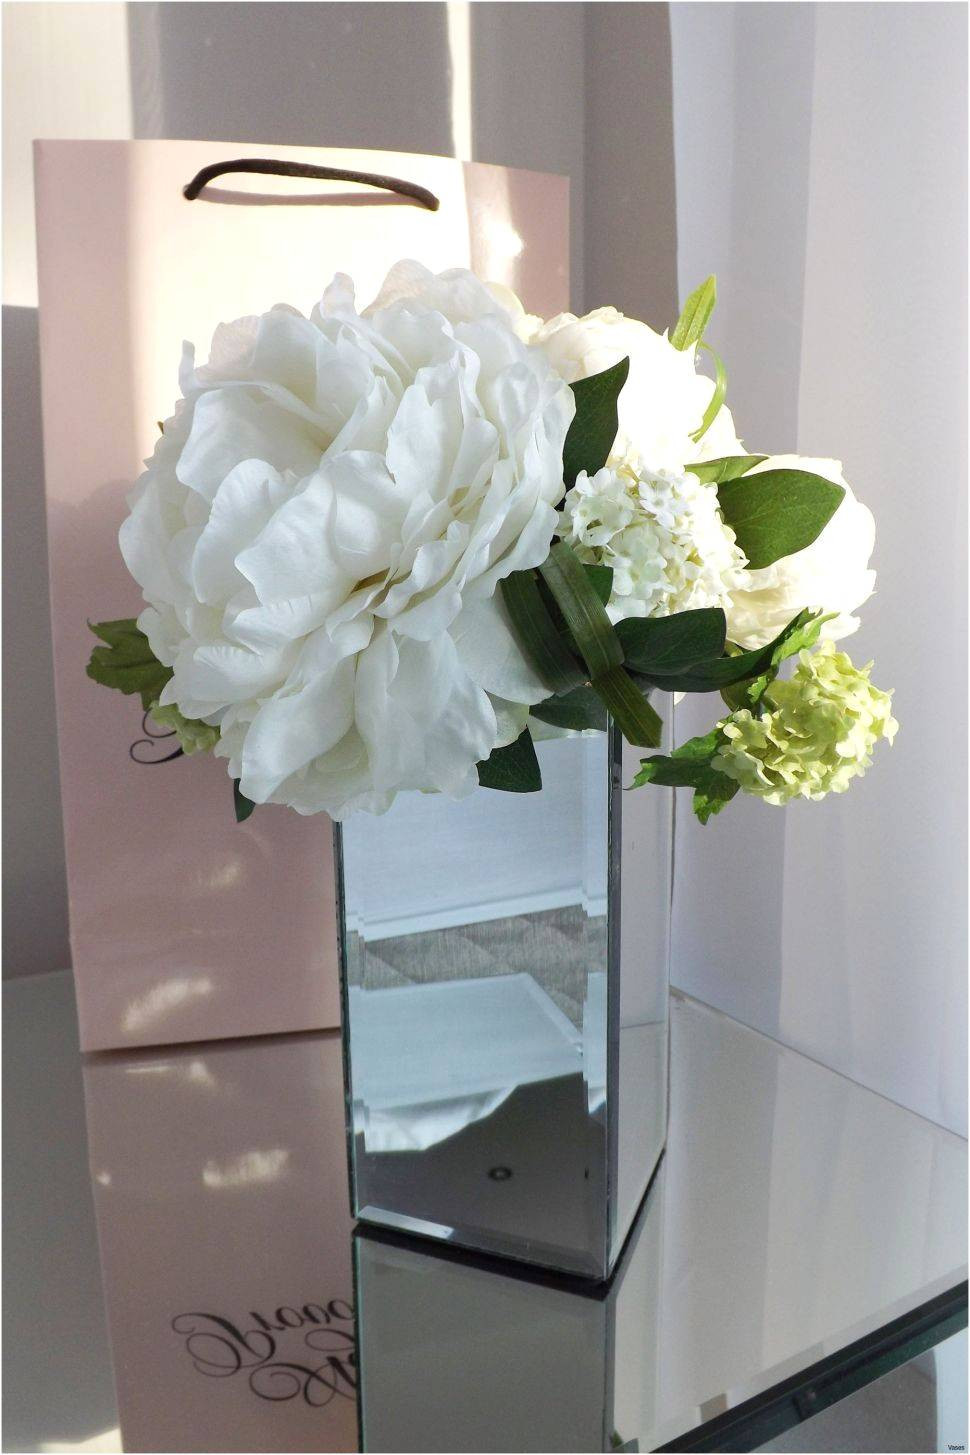 25 Wonderful Hydrangea Centerpieces In Square Vases